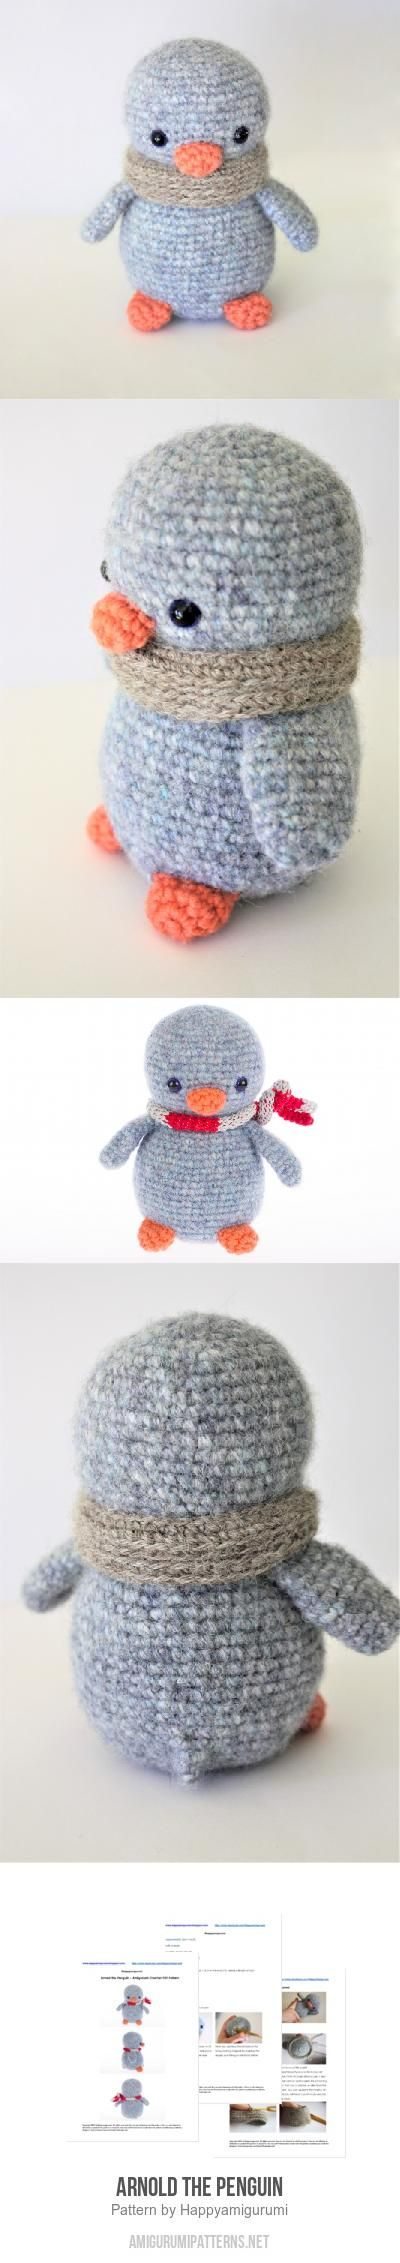 Arnold the Penguin amigurumi pattern